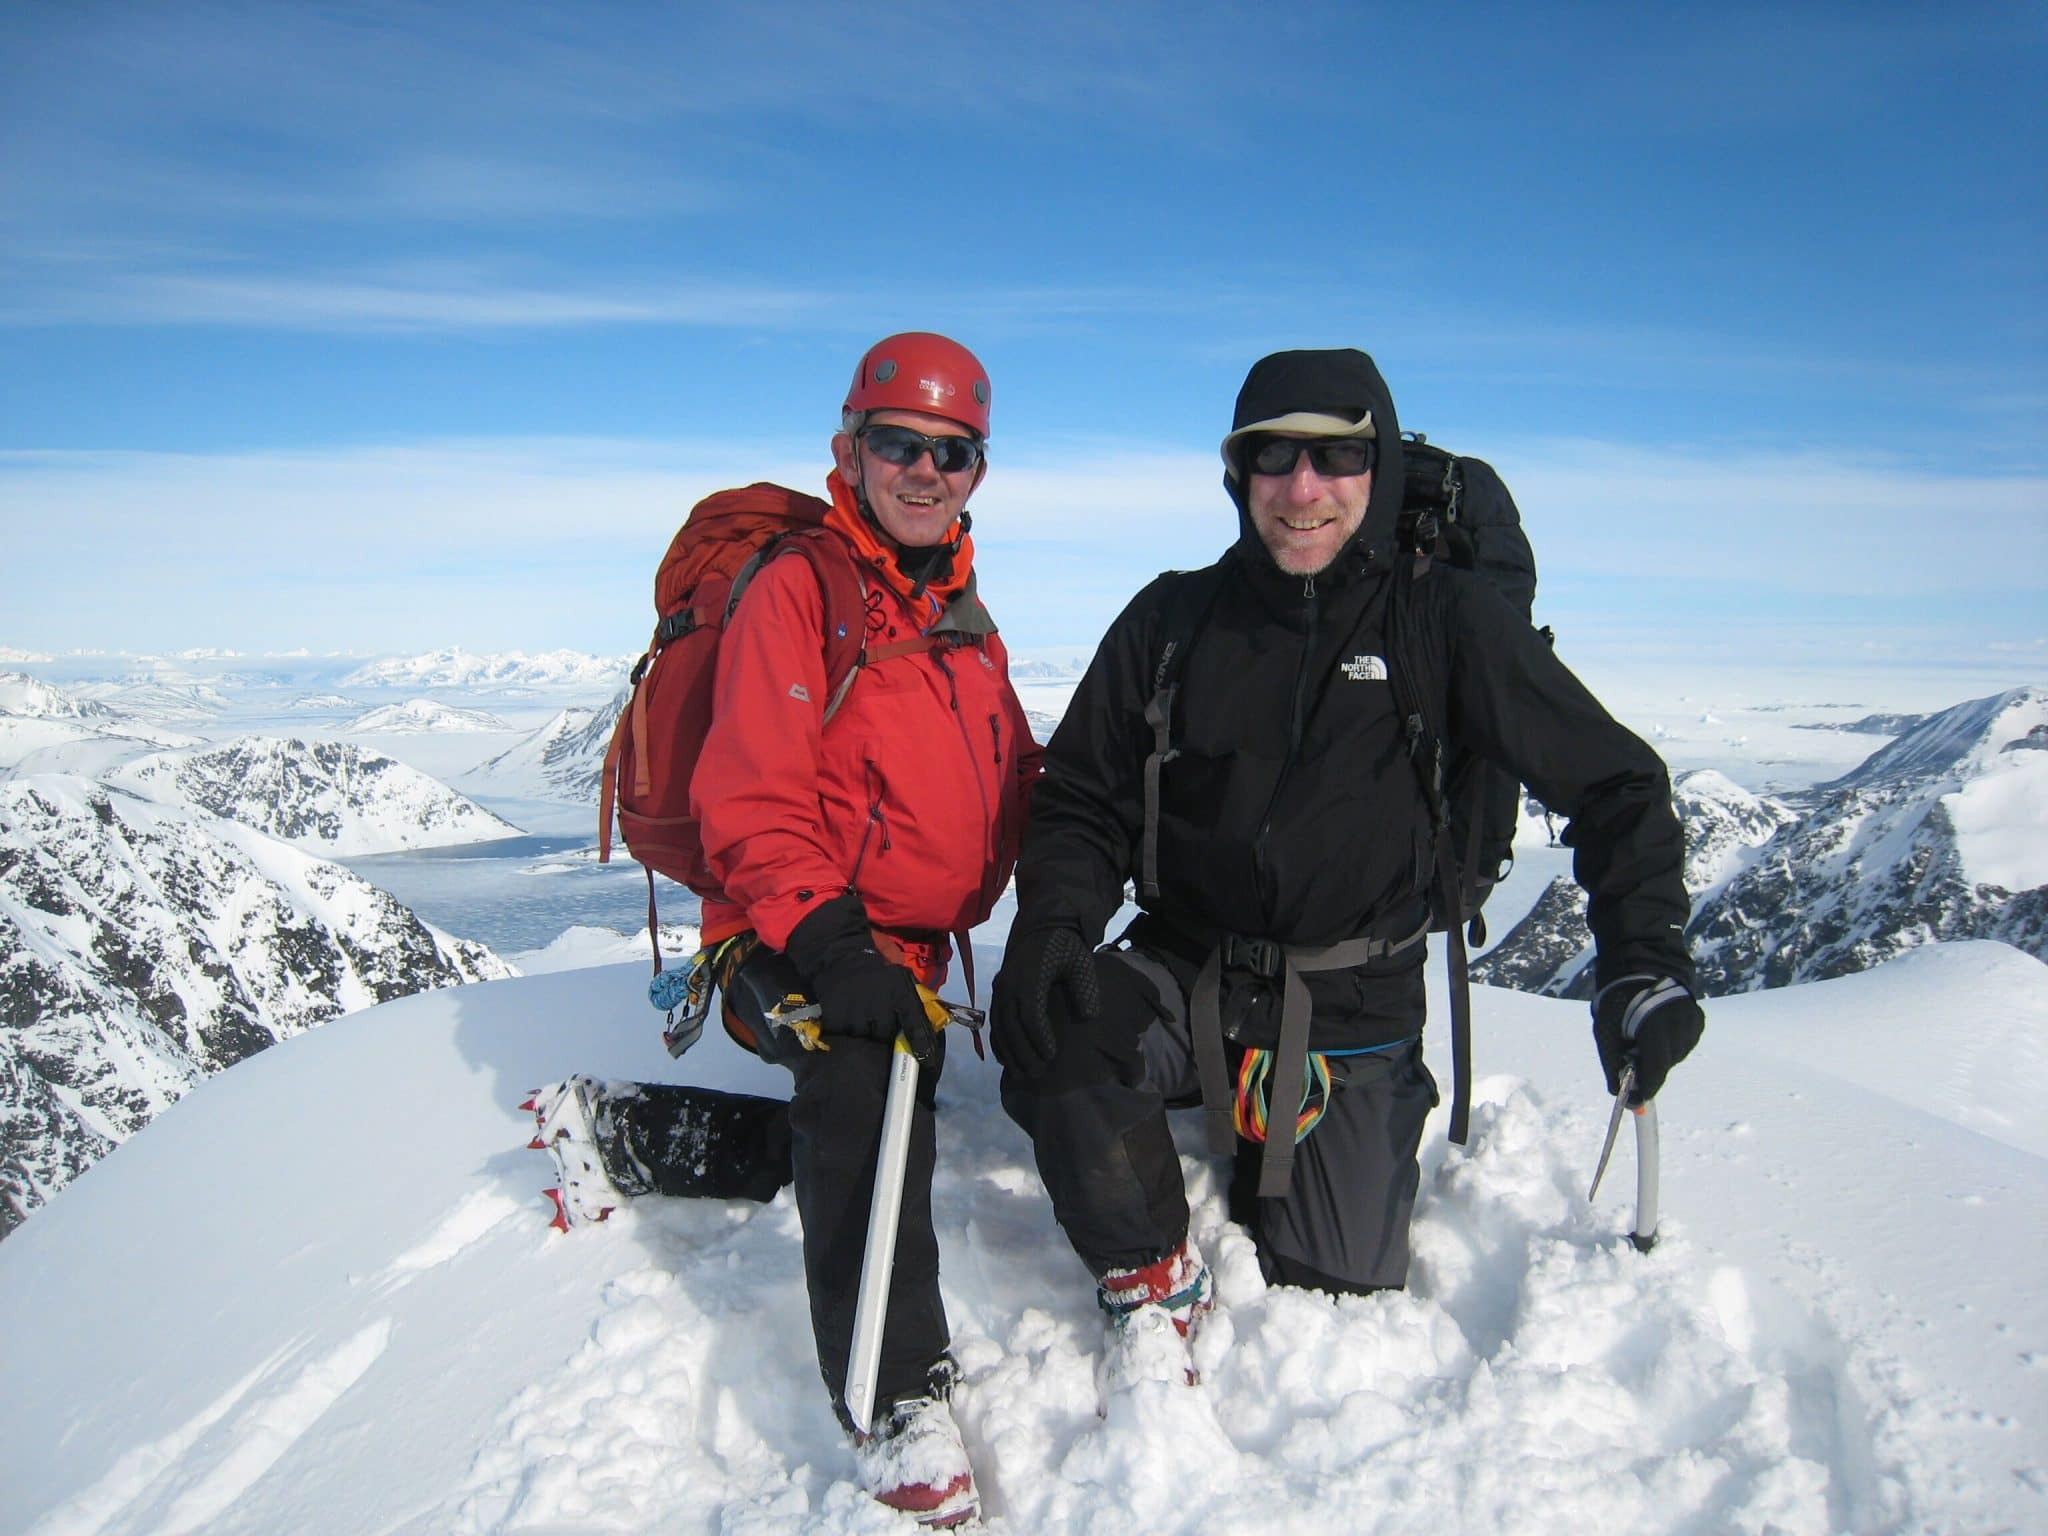 Alpine Ski club members ski mountaineering in Greenland